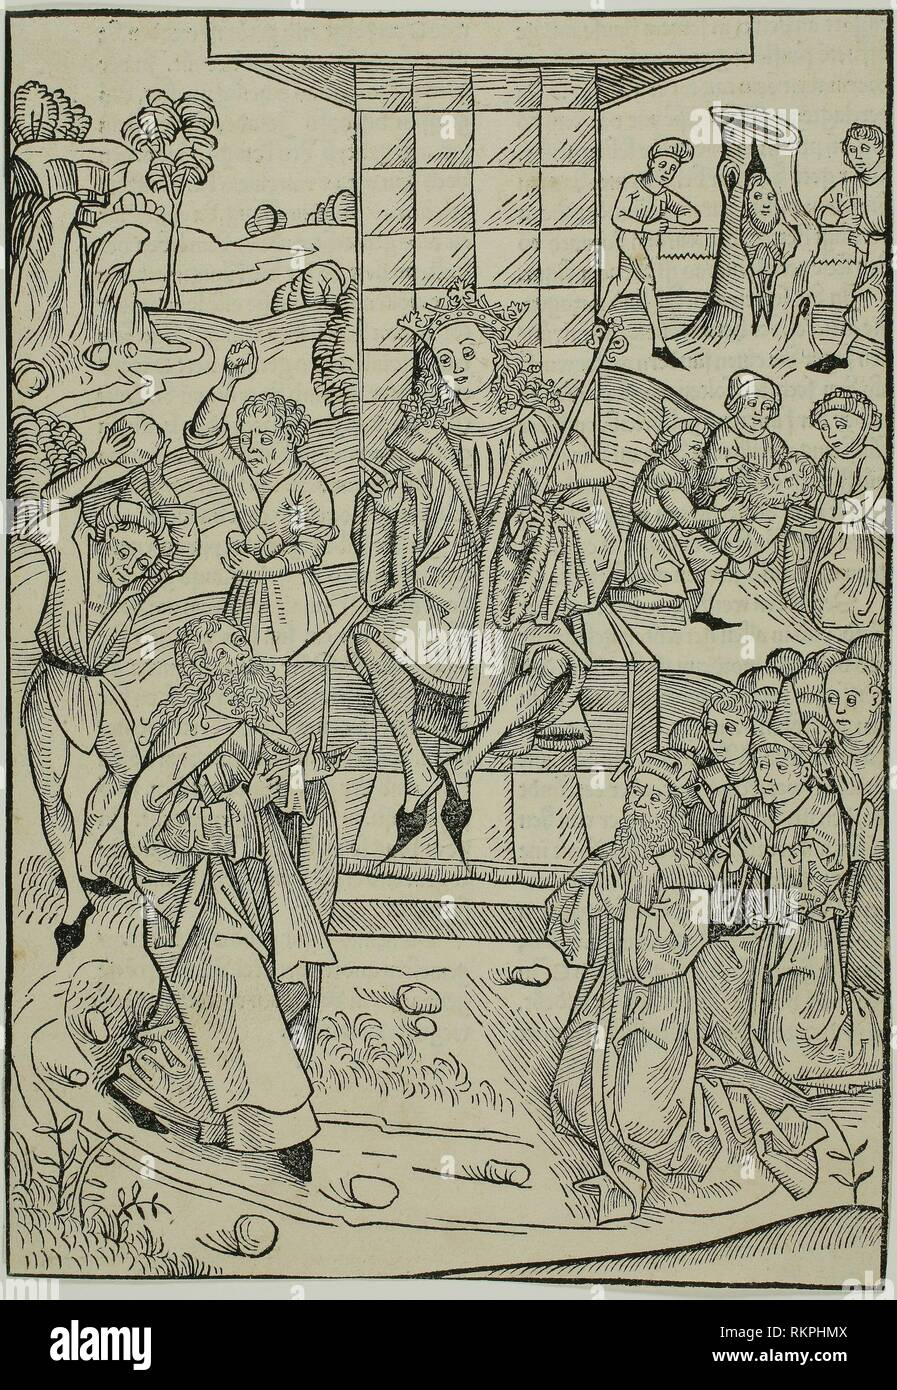 The Stoning of Zacharias and Isaias, page 9 from the Treasury (Schatzbehalter) - 1491 - Michael Wolgemut and Workshop (German, 1434/37–1519) - Stock Image